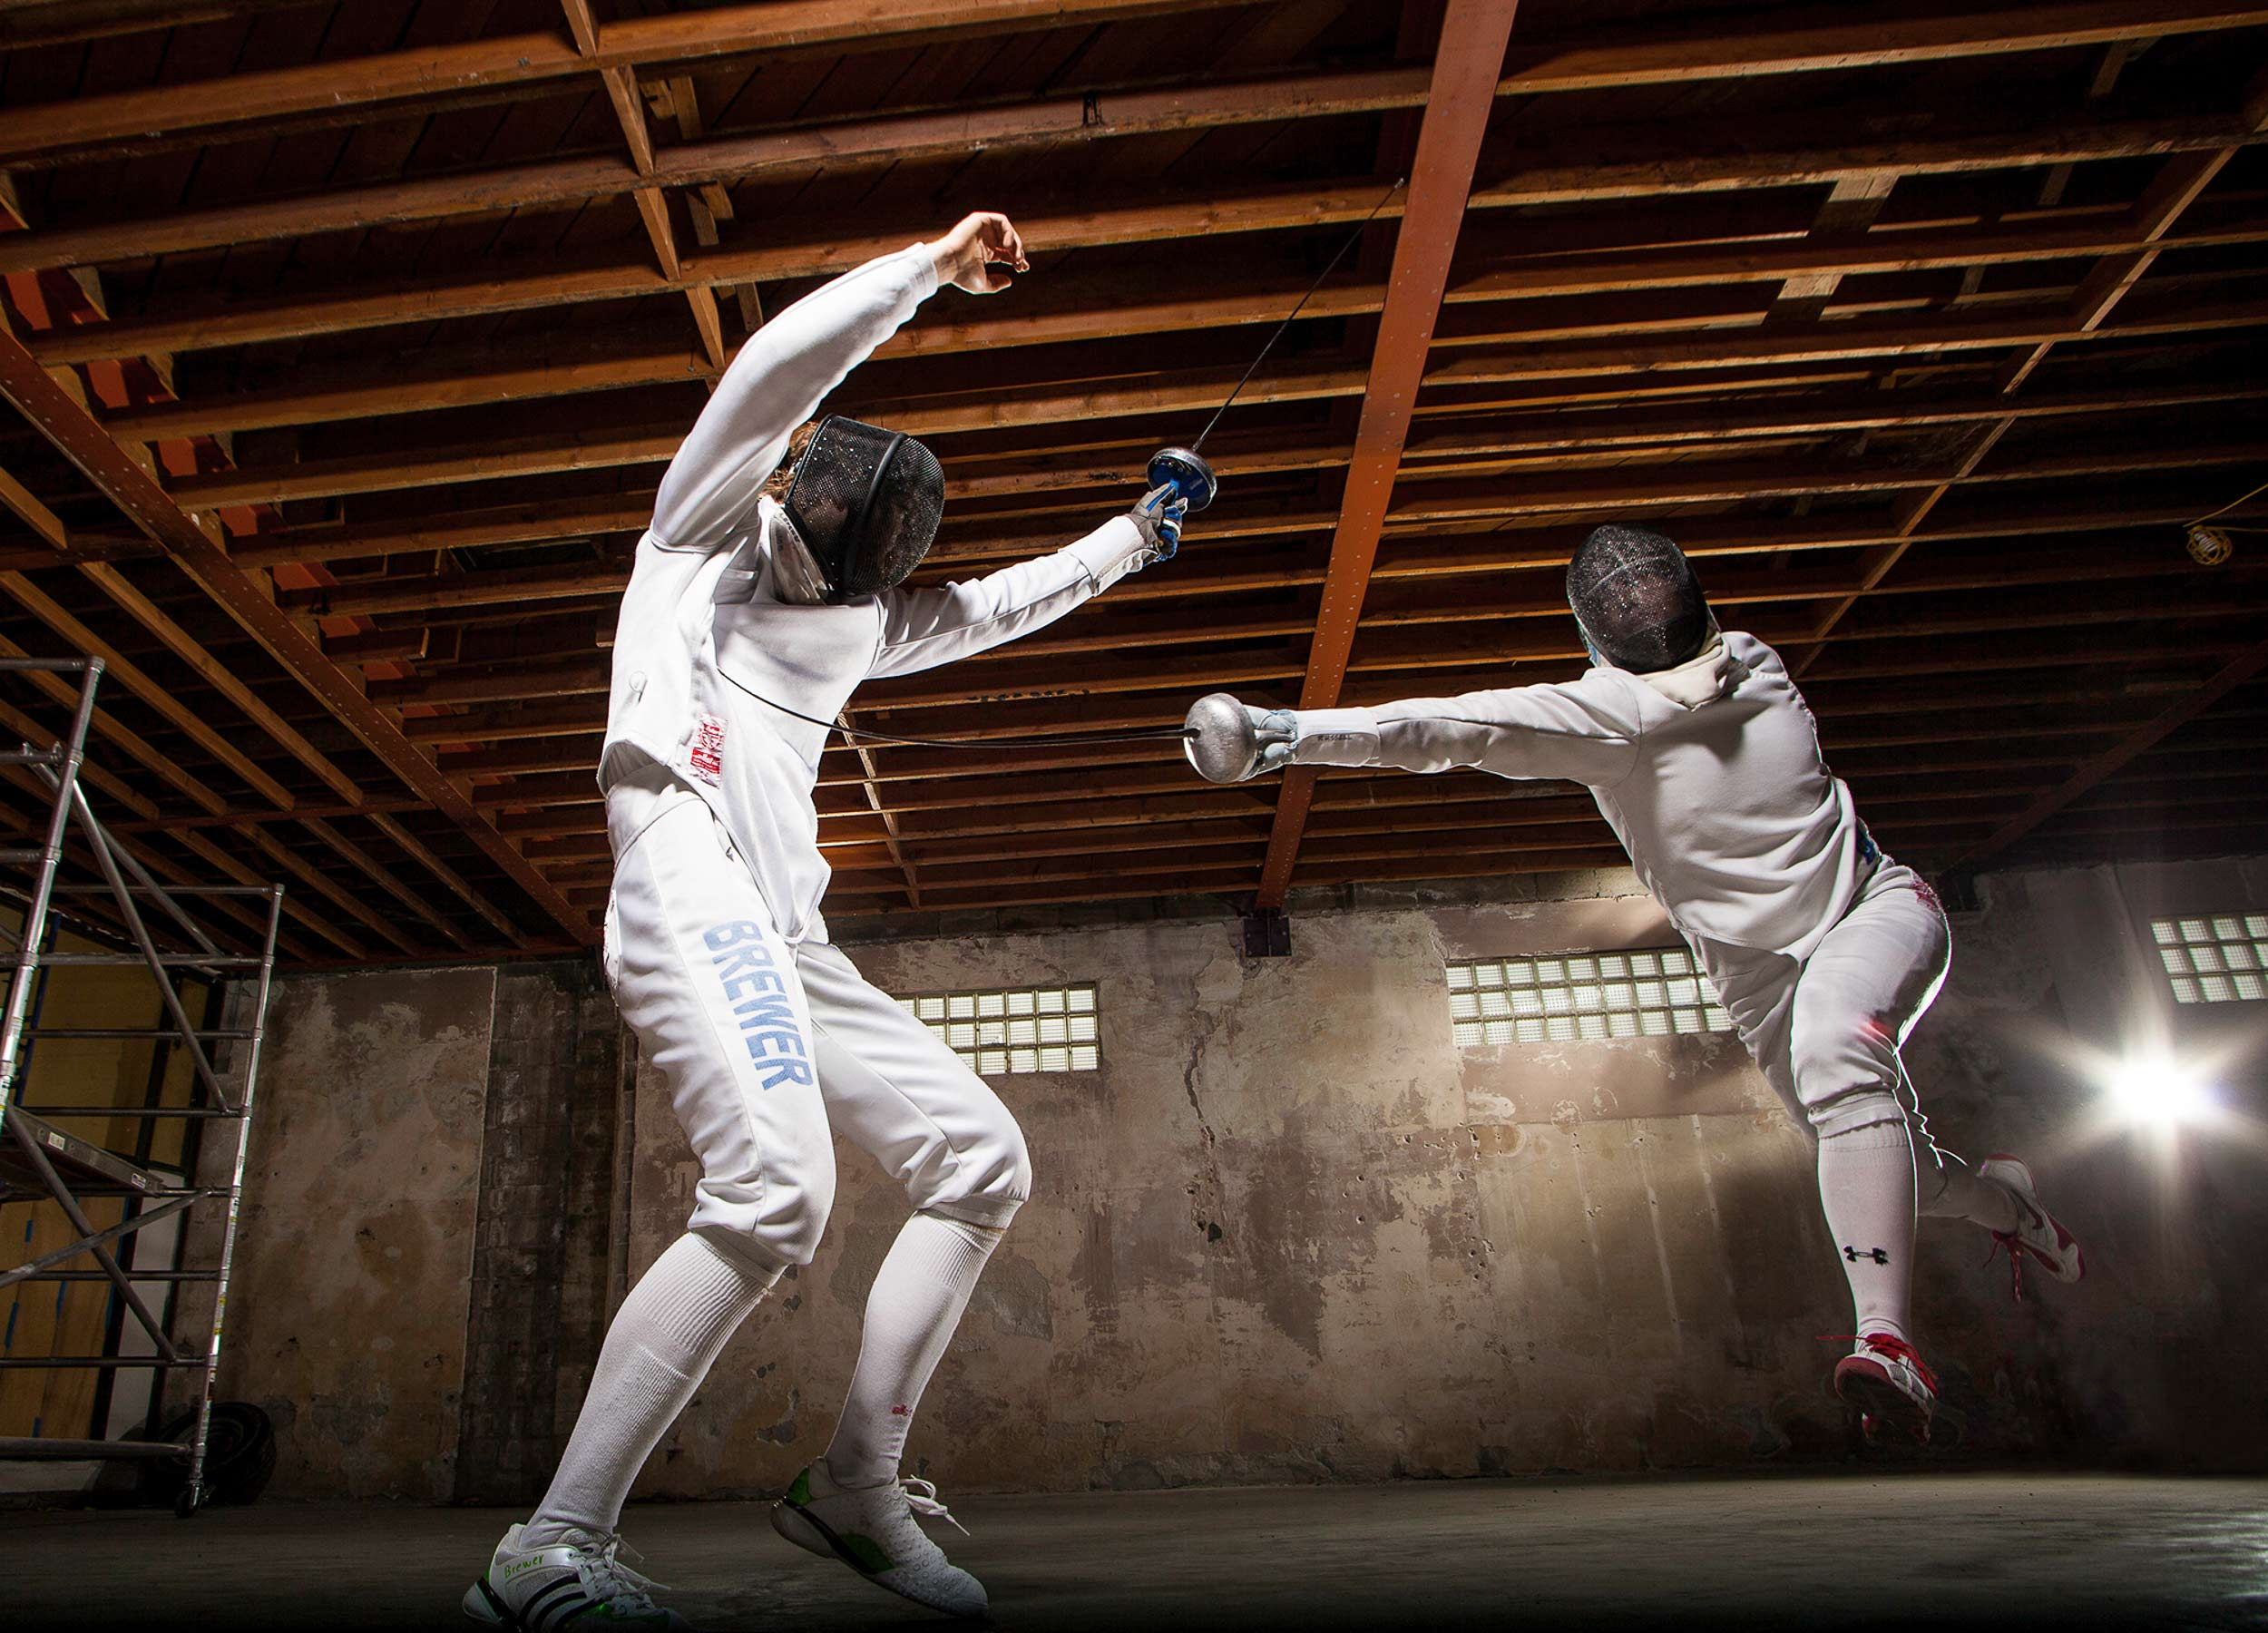 Fencing_JMichaelTuckerPhotography.jpg